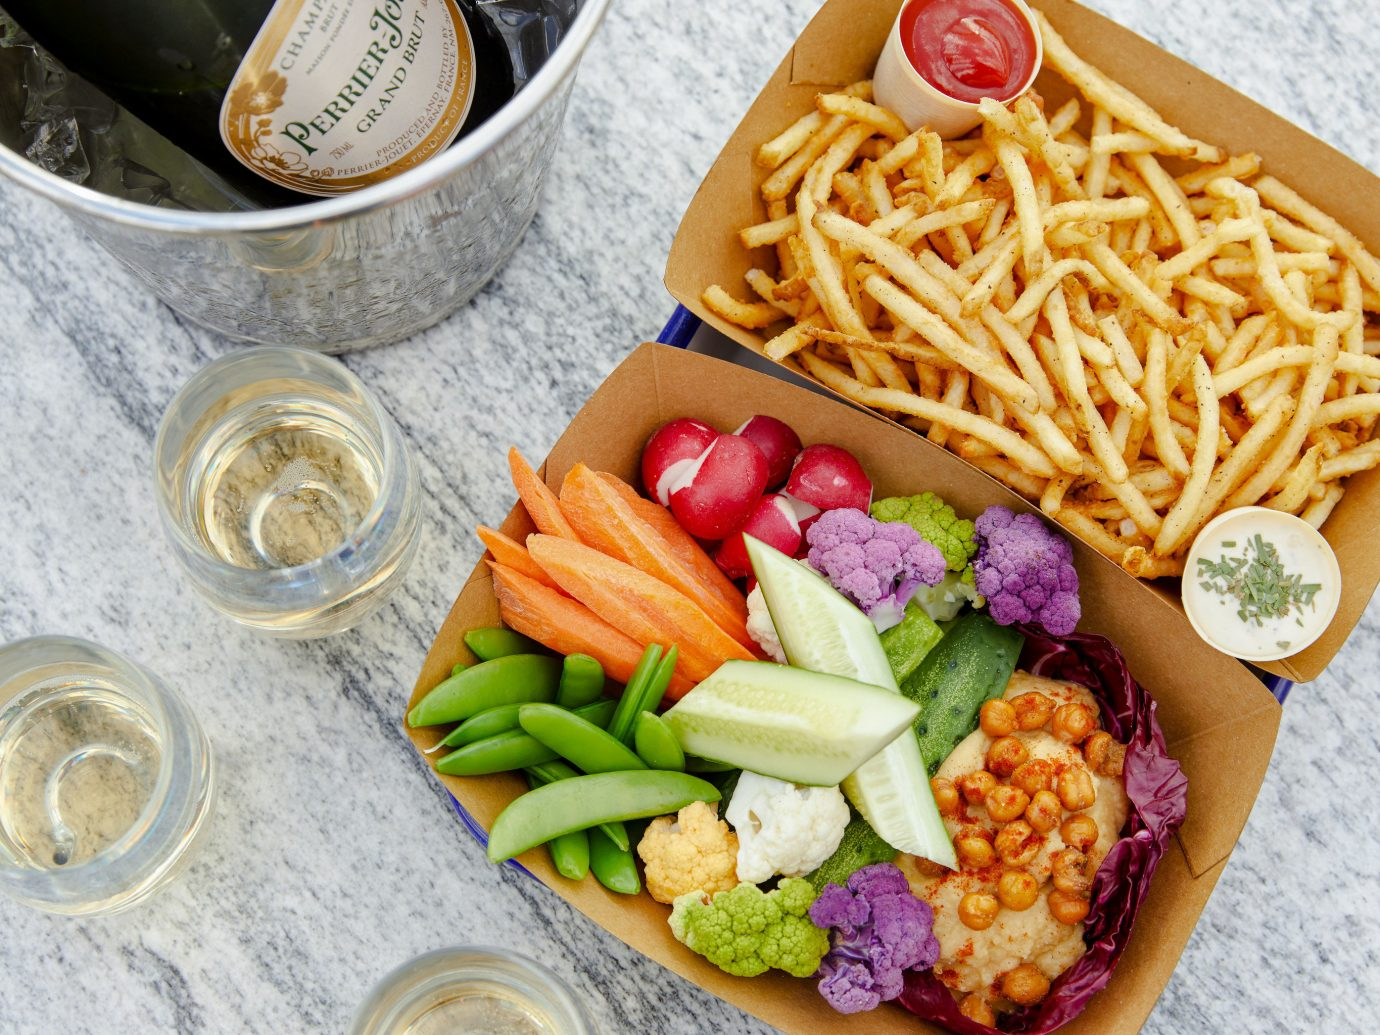 Food + Drink NYC food dish meal cuisine lunch vegetarian food vegetable side dish appetizer container asian food salad junk food recipe bento fast food finger food